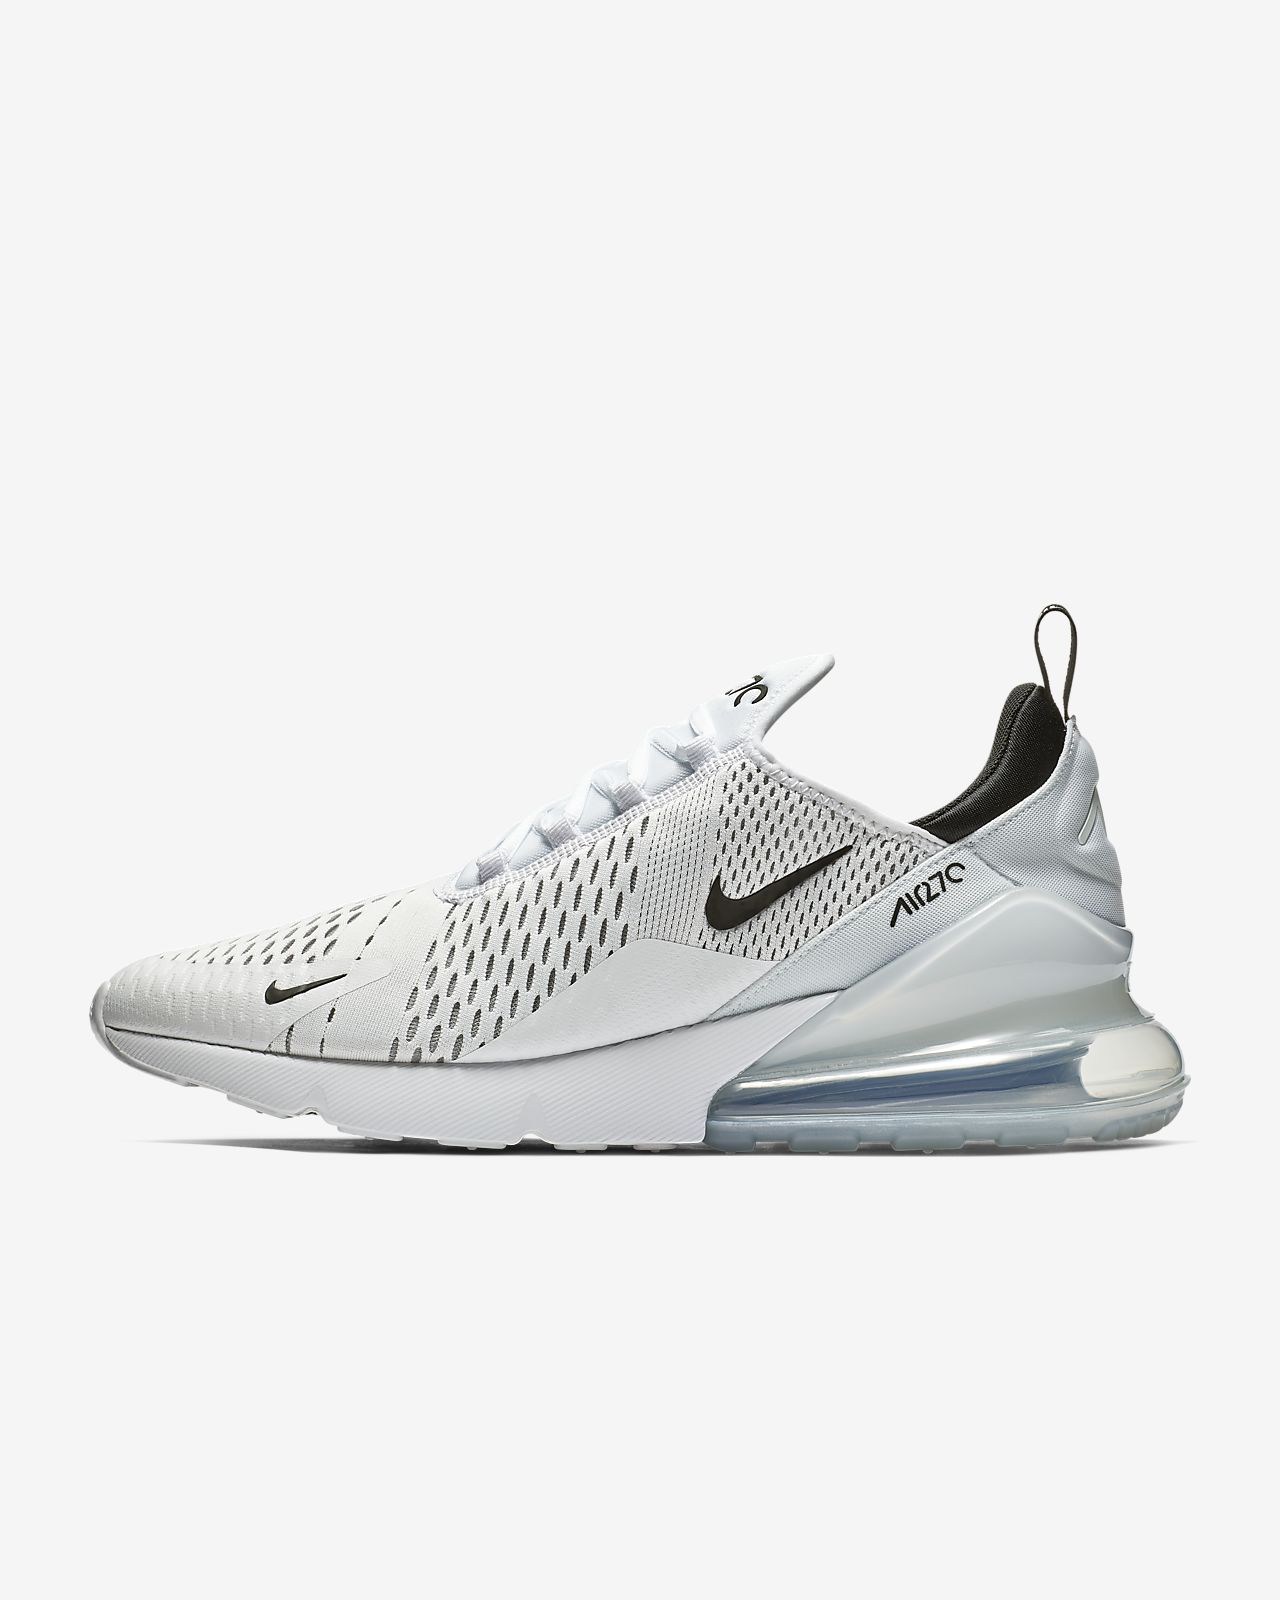 nike sale code new york, Men's Nike Air Max 180 White Green